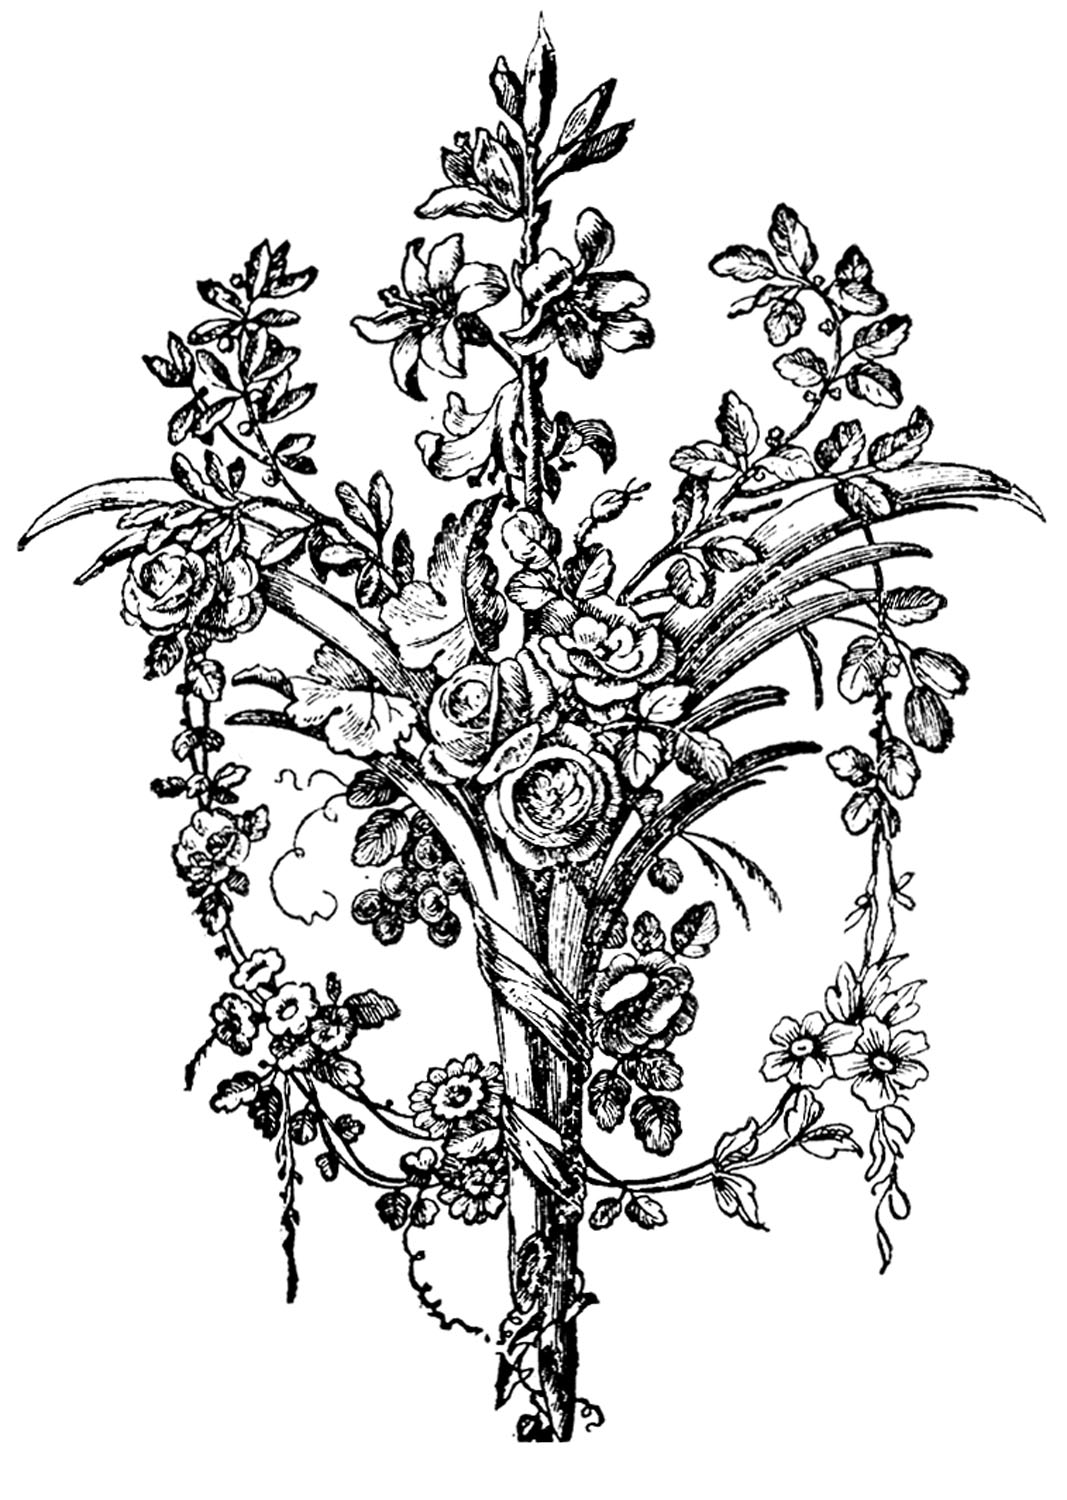 Vintage Graphic Images - French Ornaments with Roses - The ...